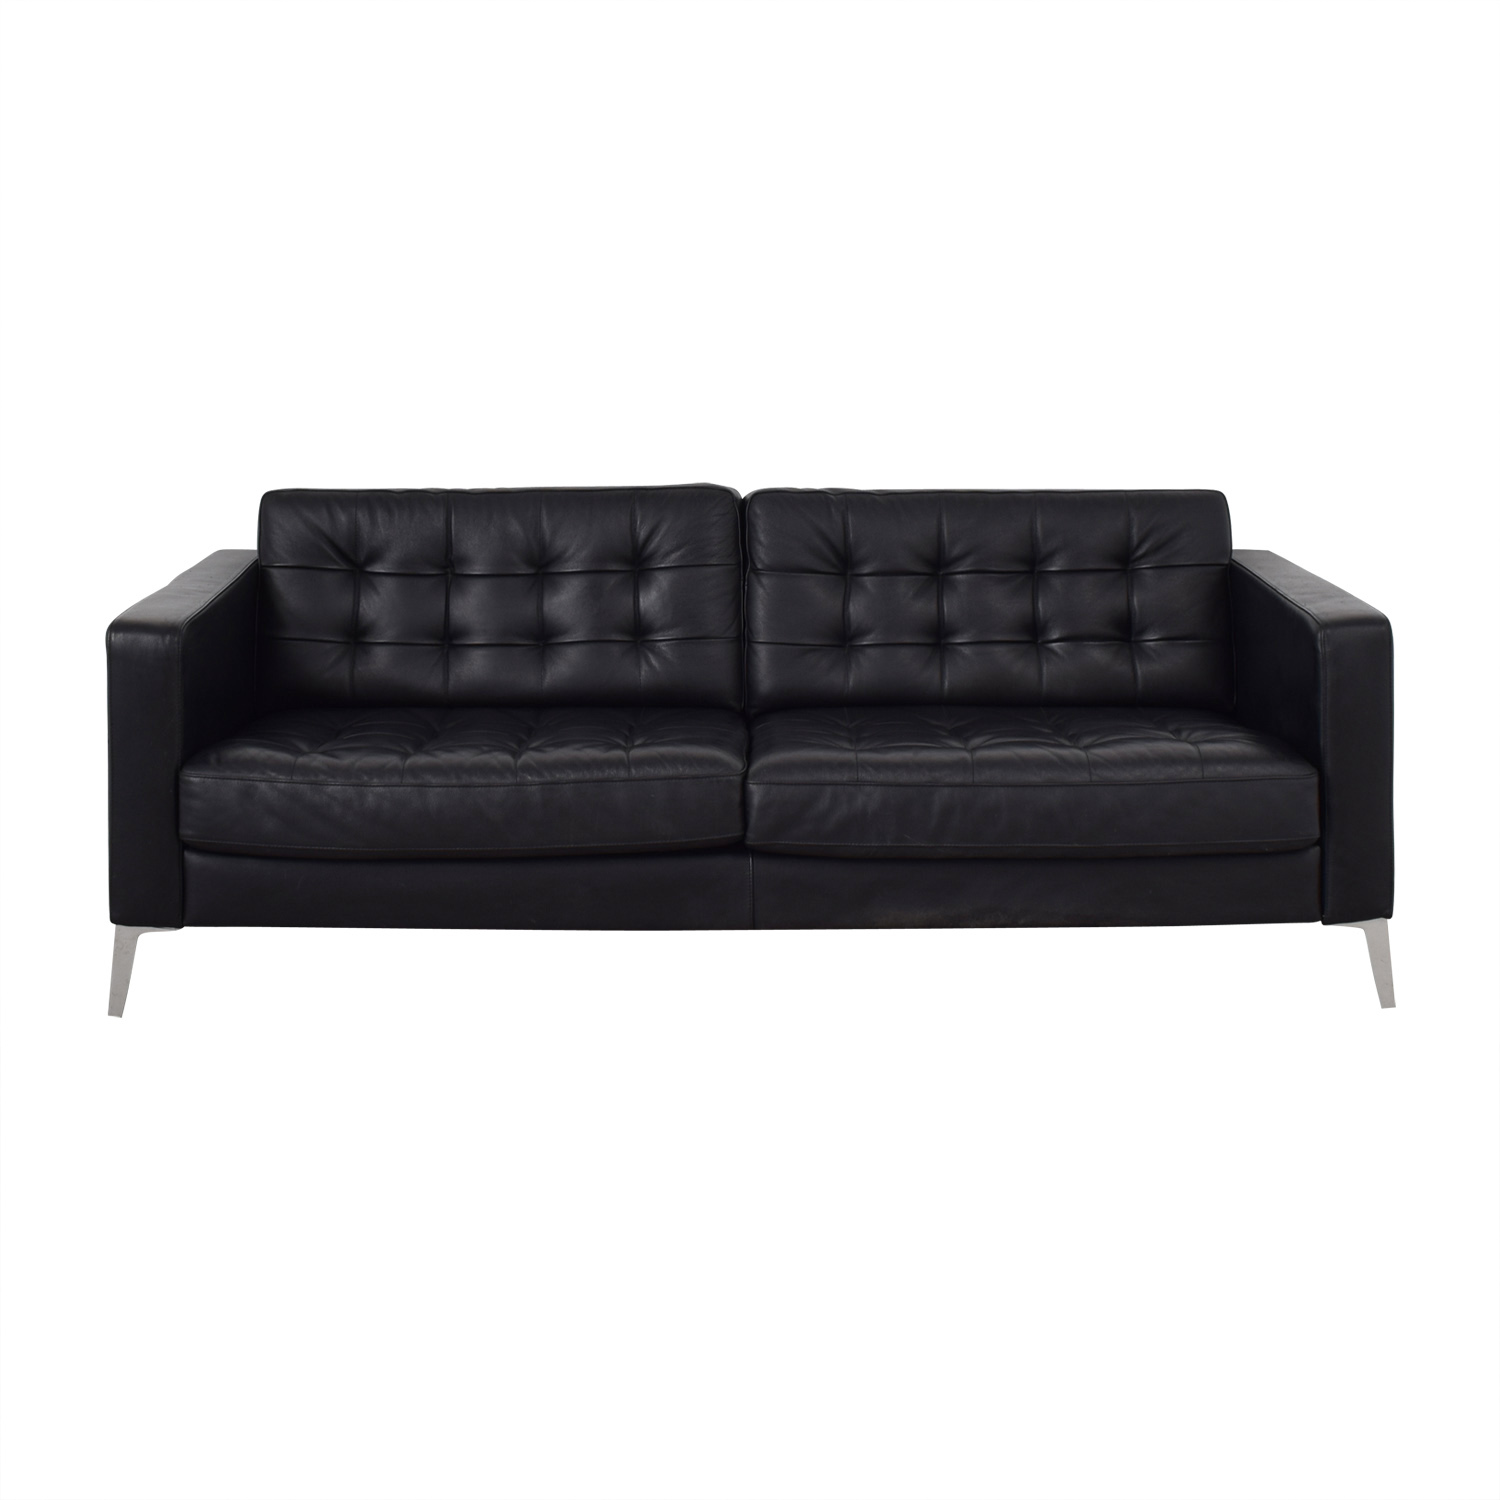 buy IKEA Black Tufted Two-Cushion Sofa IKEA Sofas